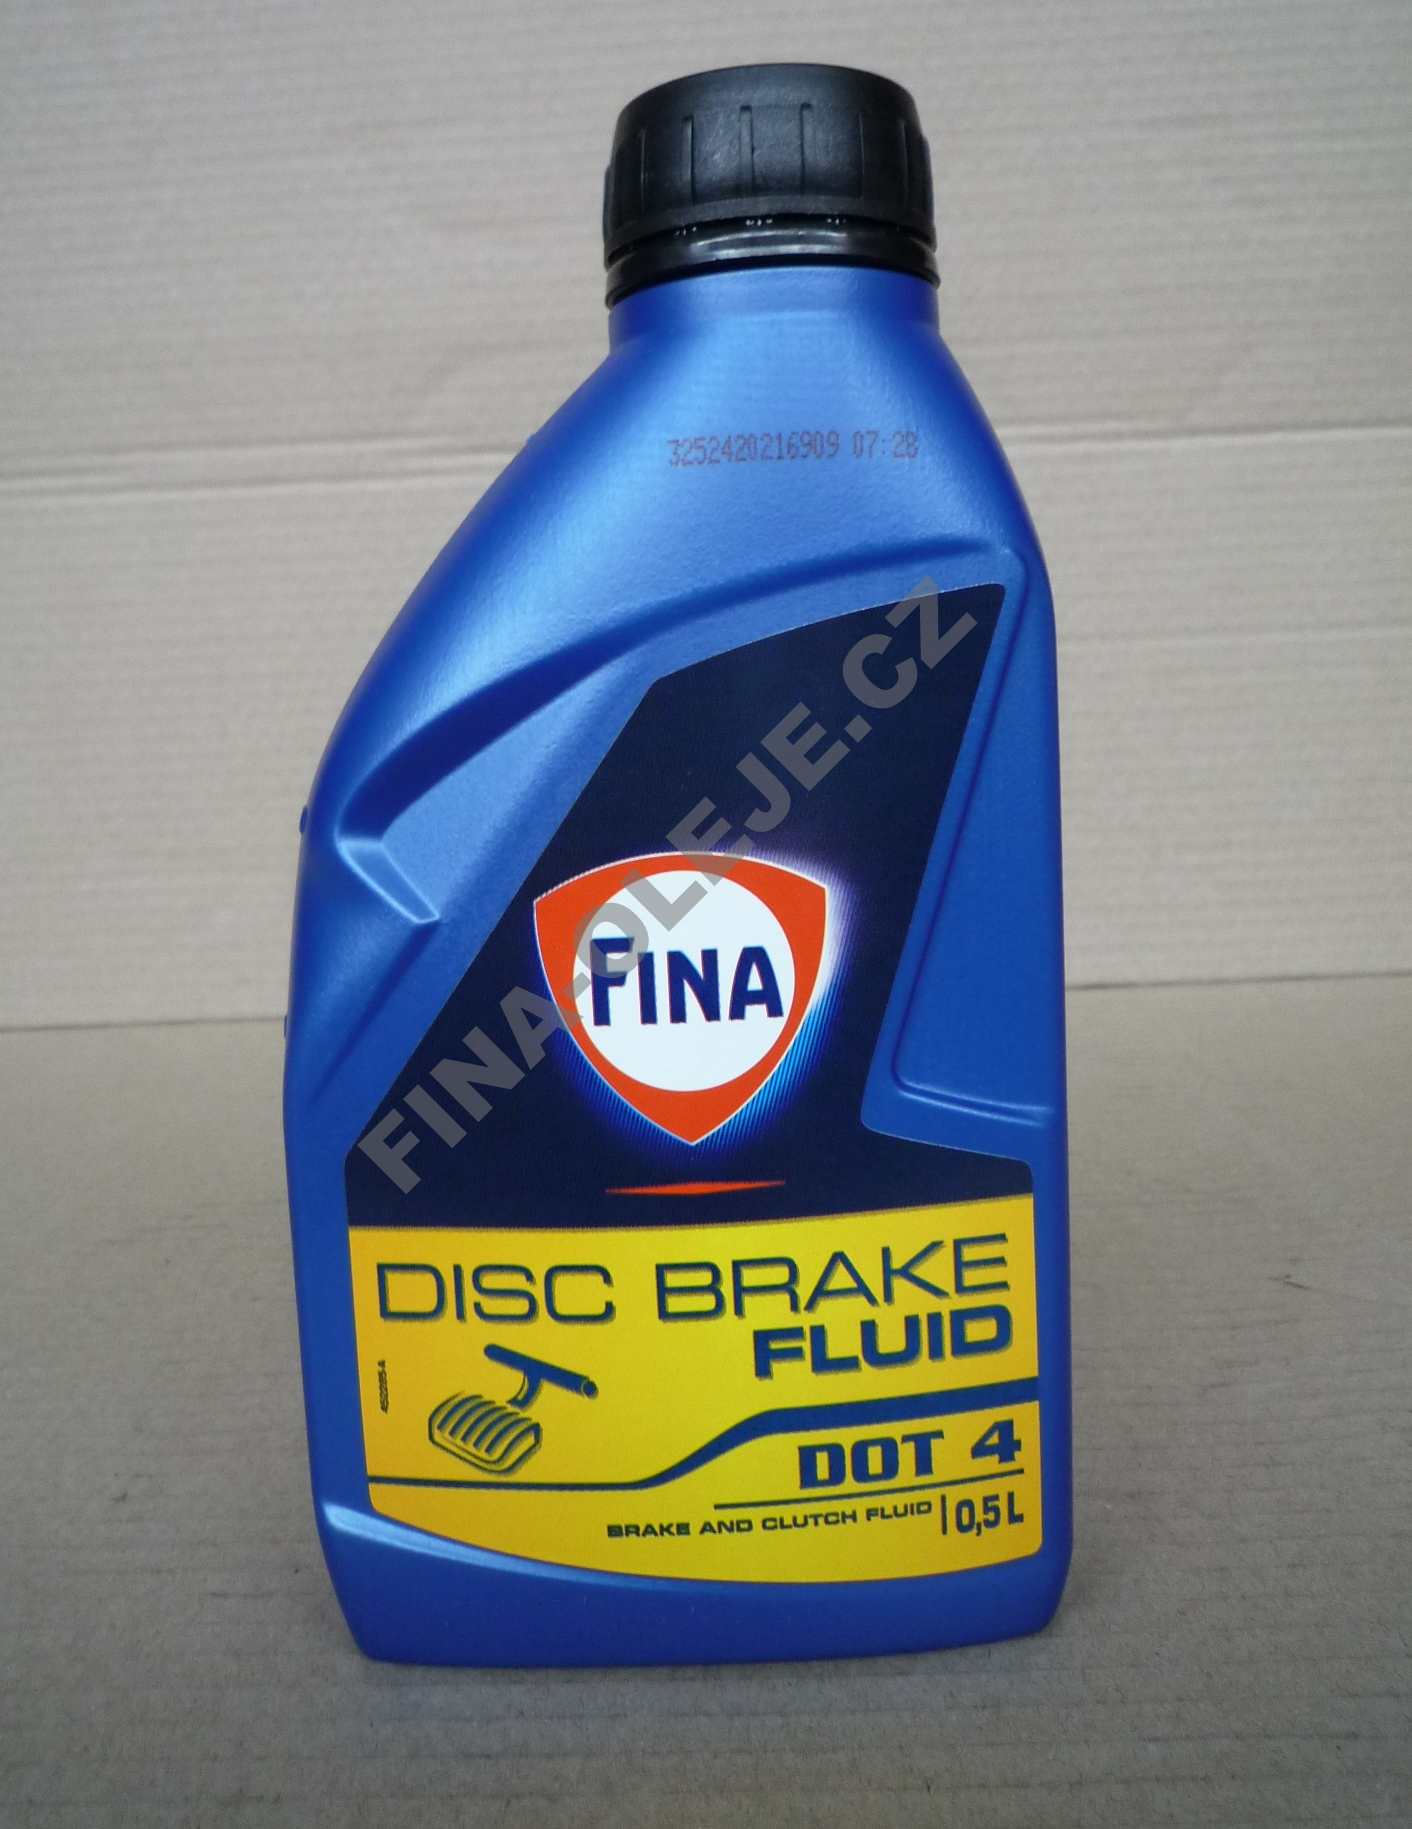 FINA DISC BRAKE FLUID DOT 4 - 1 l